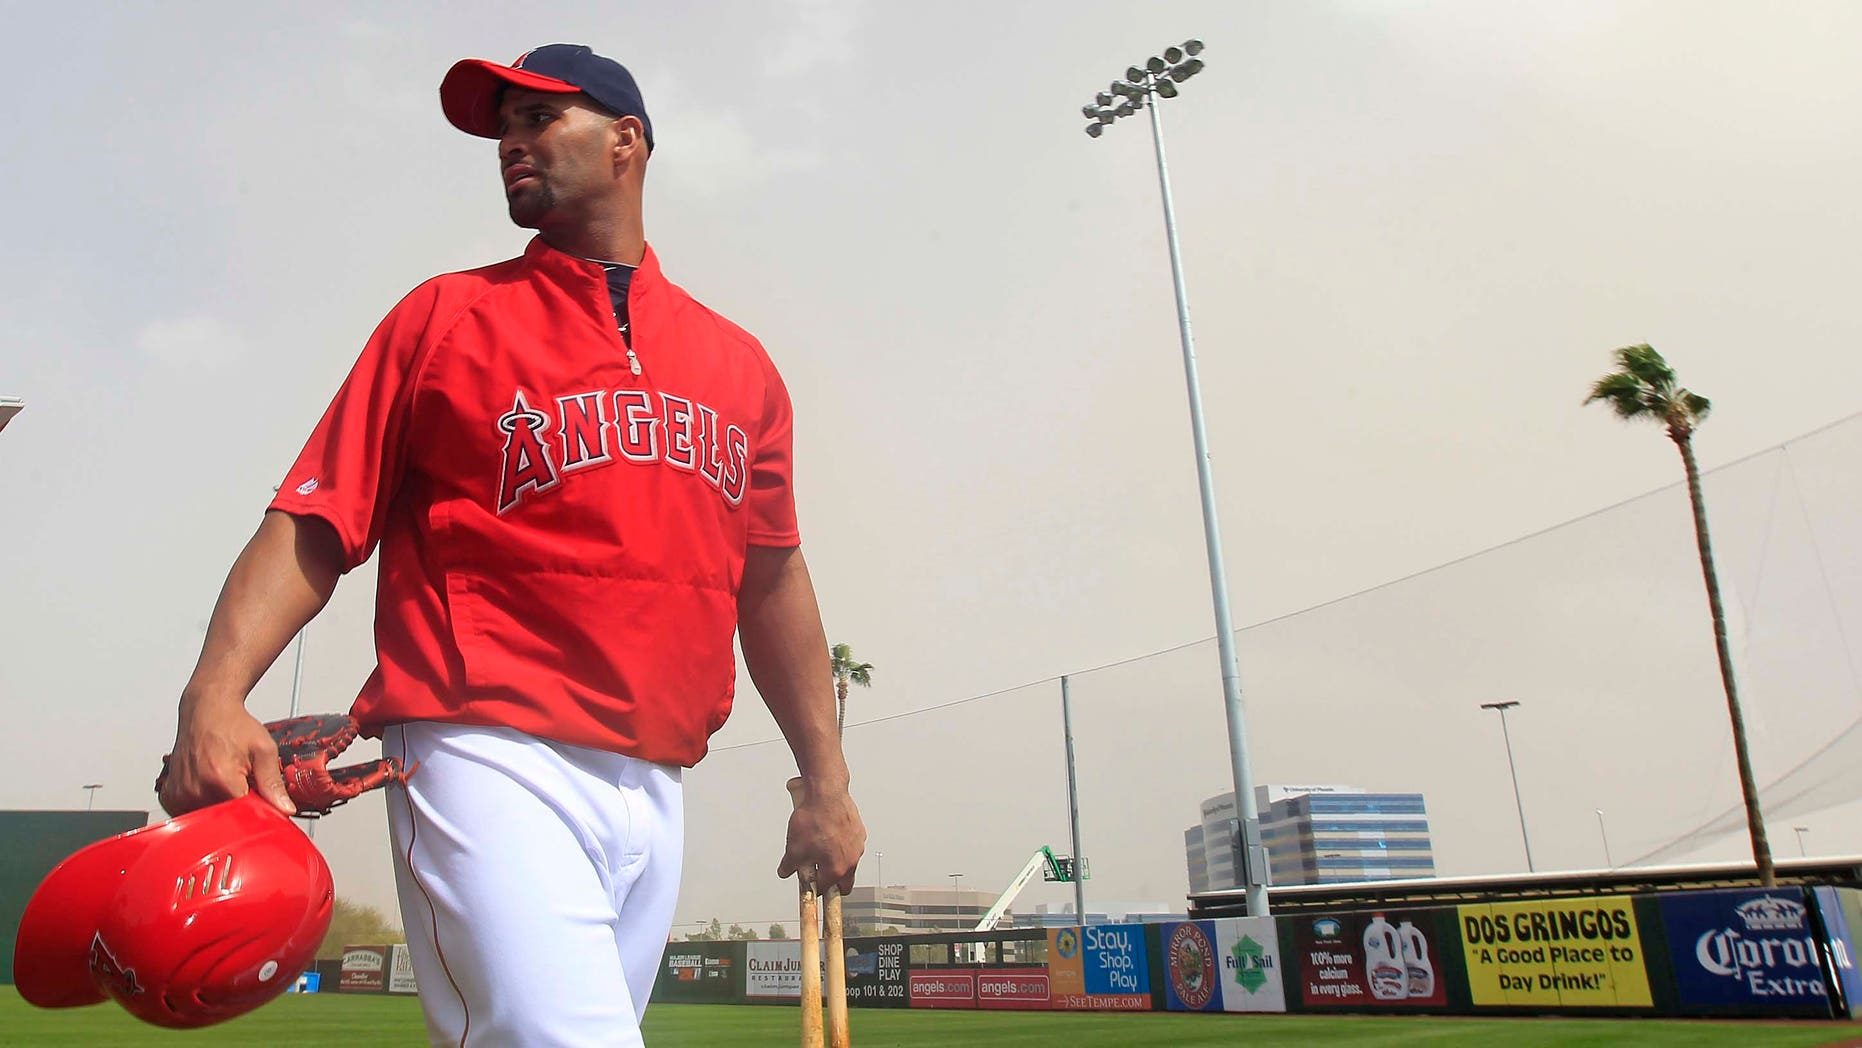 Albert Pujols at Spring training in Tempe, AZ.